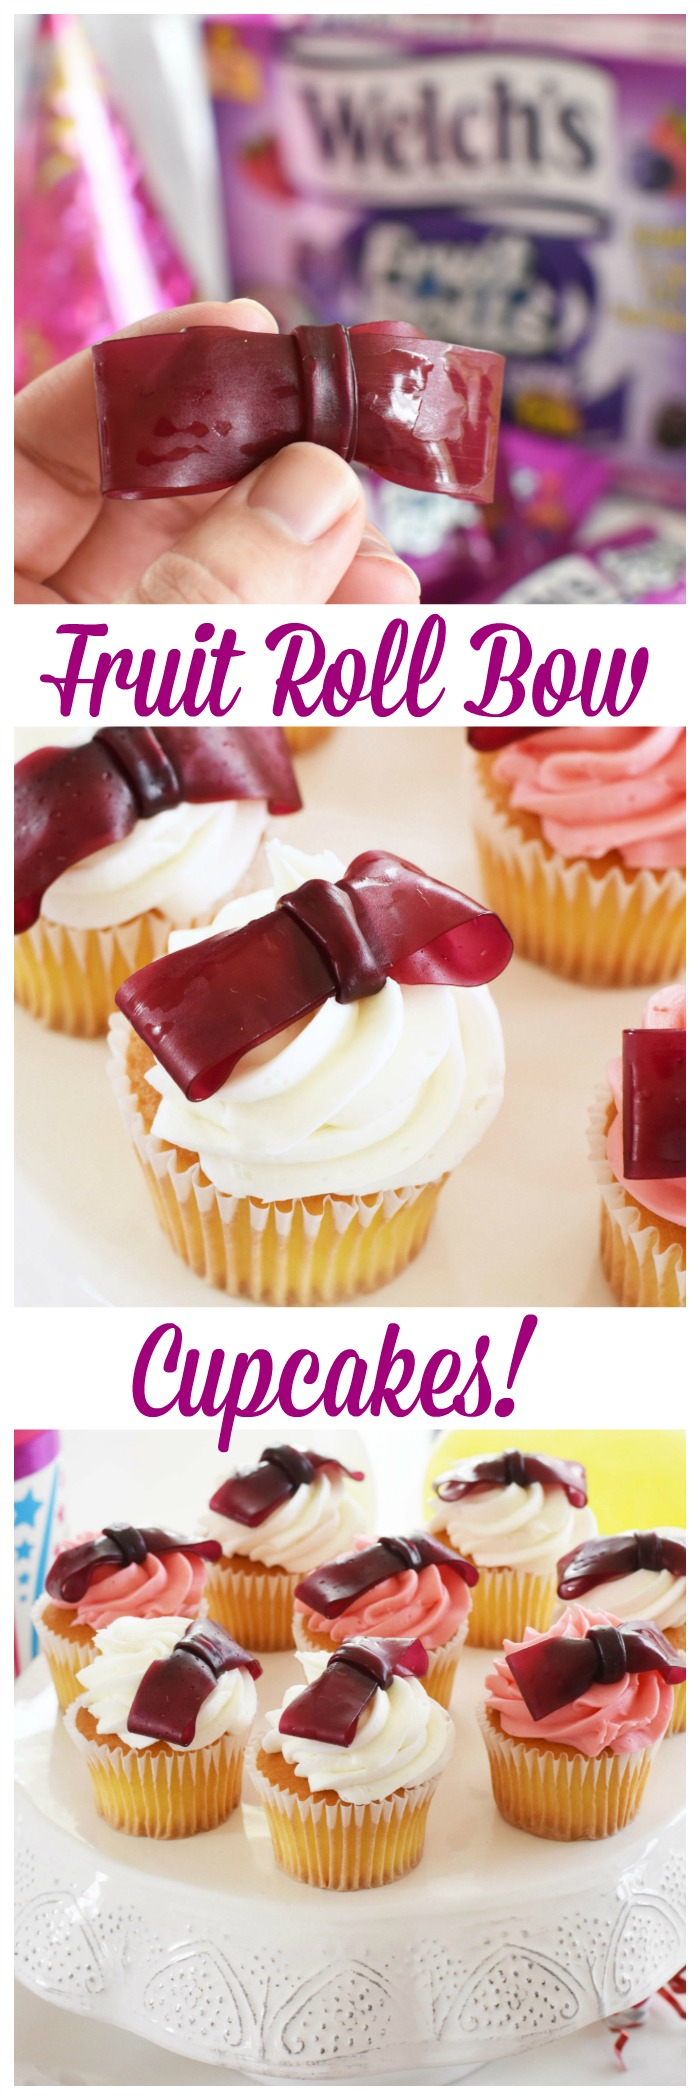 How to Jazz up Store-Bought Cupcakes with These Yummy & Easy Fruit Roll Bows- Looking for an adorable cupcake idea for a little girl's birthday party? These fruit roll bows are so easy and totally yummy! You can decorate store bought cupcakes and have an easy, peasy and super cute tray of cupcakes in less than 10 mins!